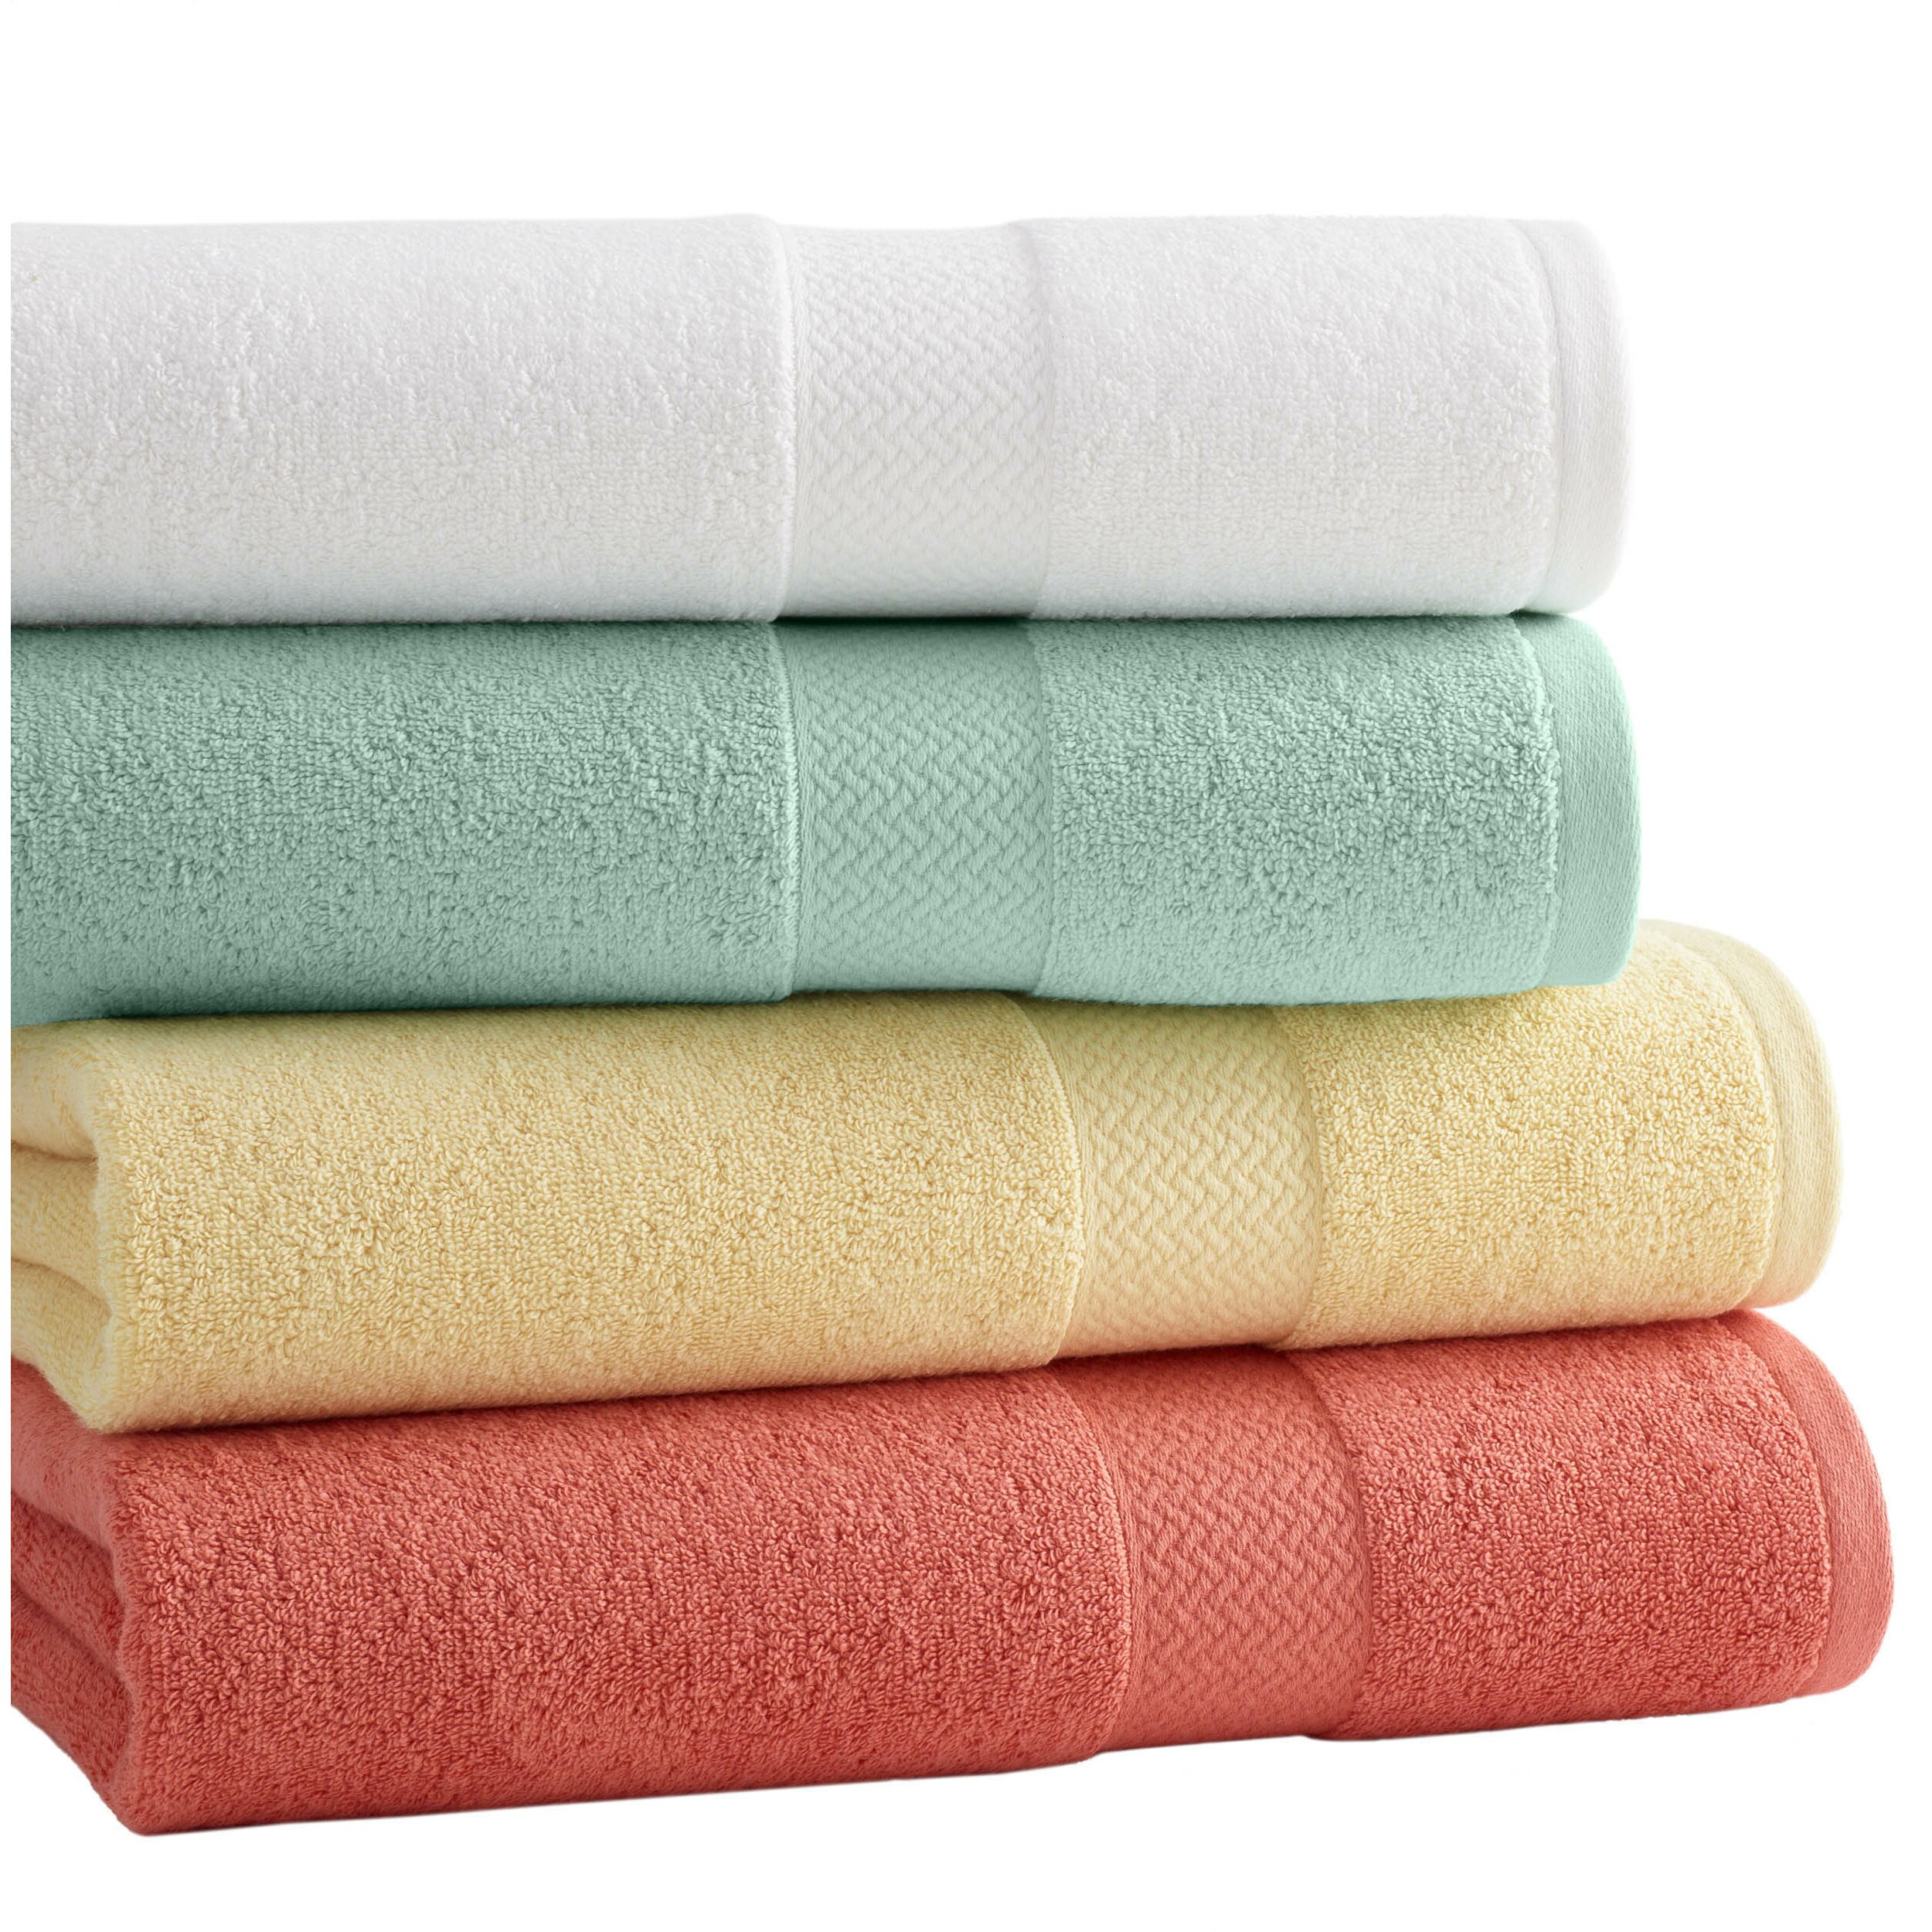 Lacoste Towels Clearance: Tommy Bahama Bedding Canopy Way Cypress Bay 6 Piece Towel